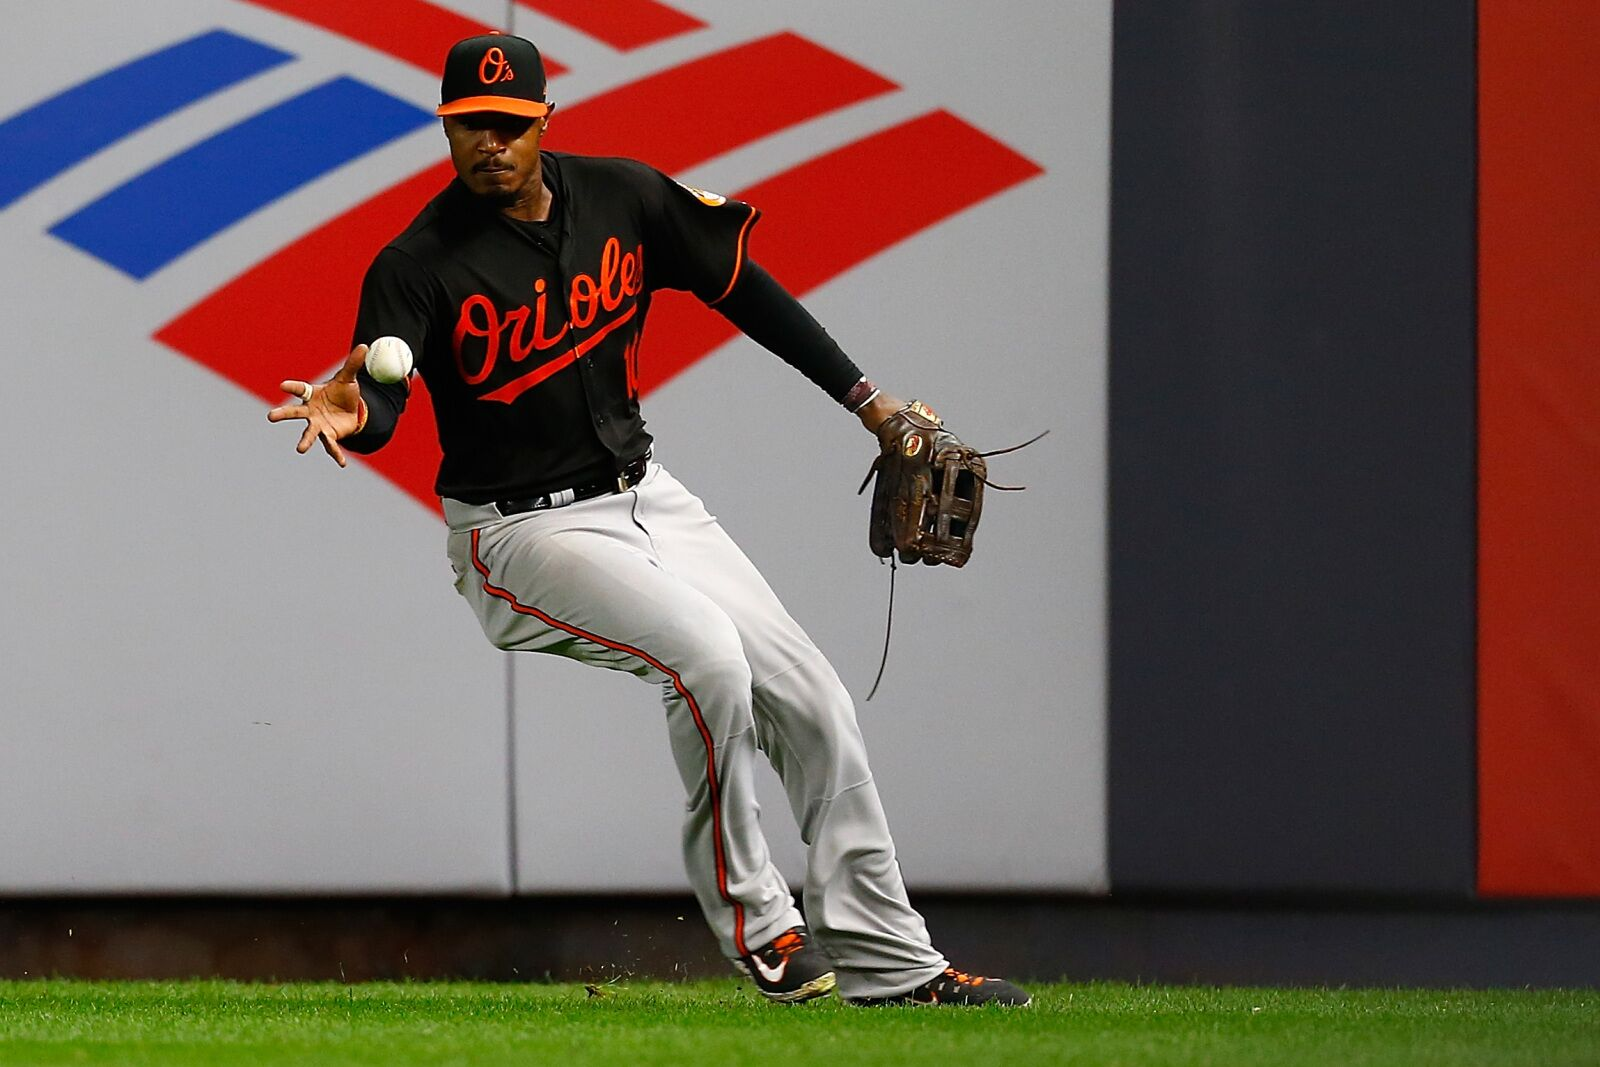 Could the Texas Rangers look to Adam Jones to improve center field output?